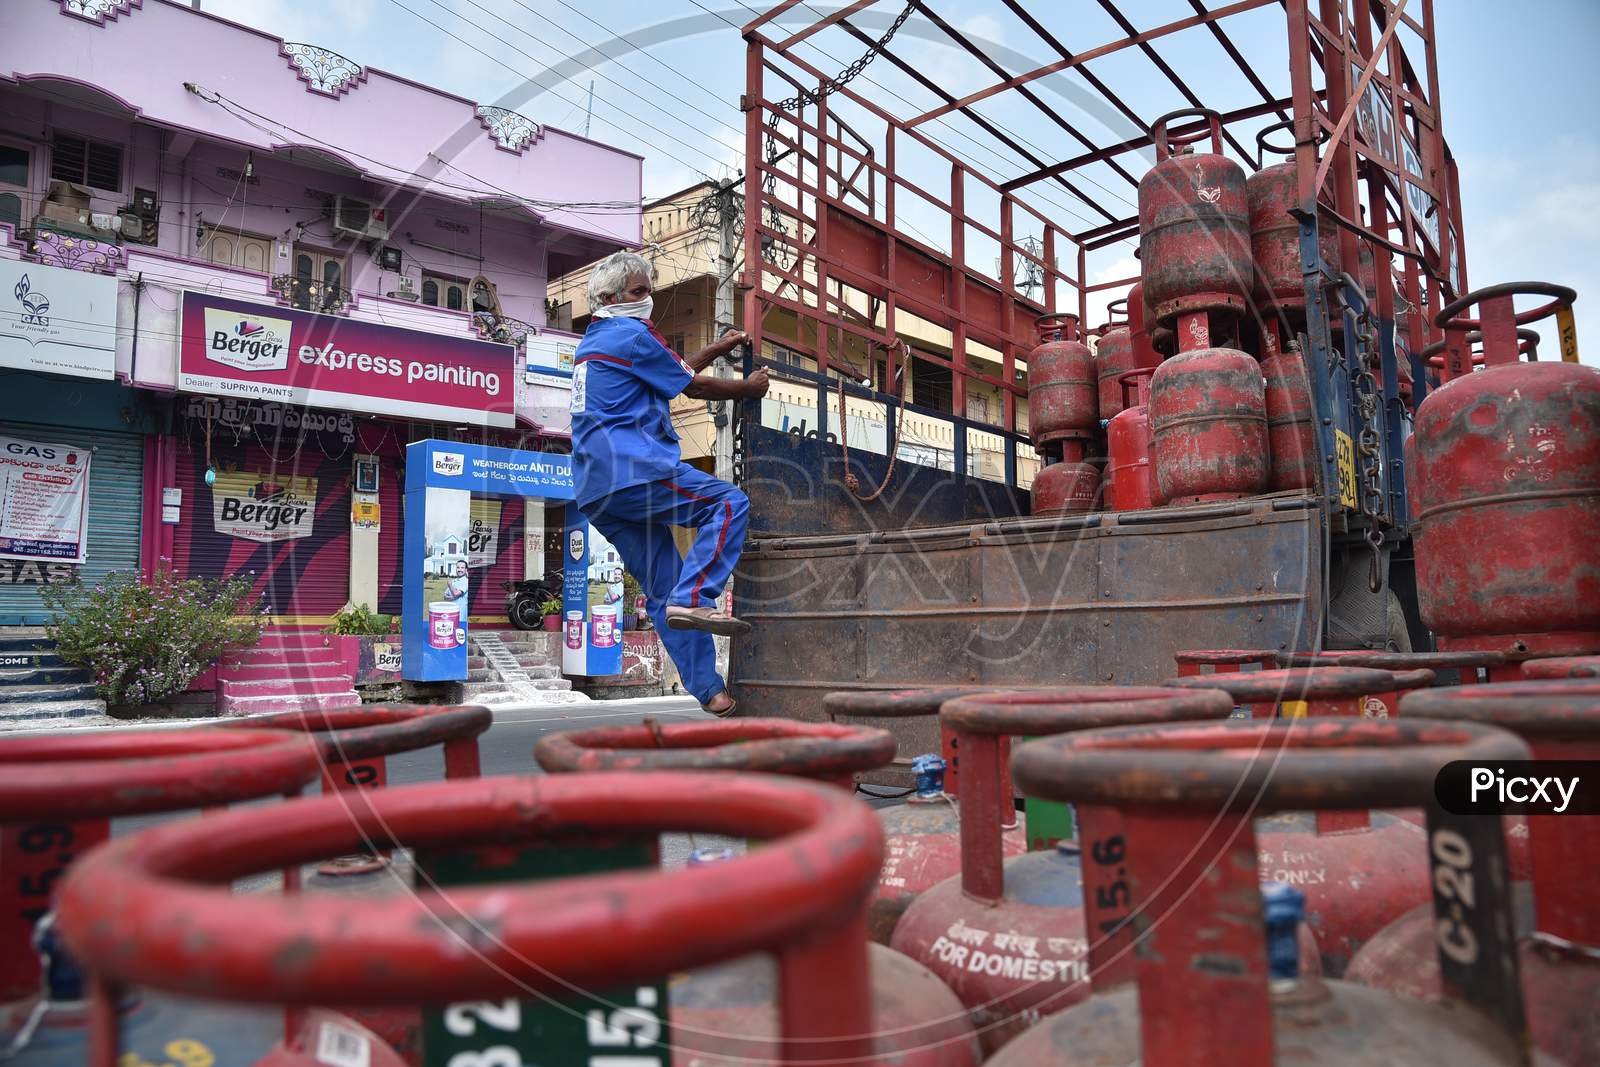 A Worker Gets Down From A Vehicle Loaded With Lpg Cylinders During The Nationwide Lockdown Imposed In The Wake Of Coronavirus, In Vijayawada.